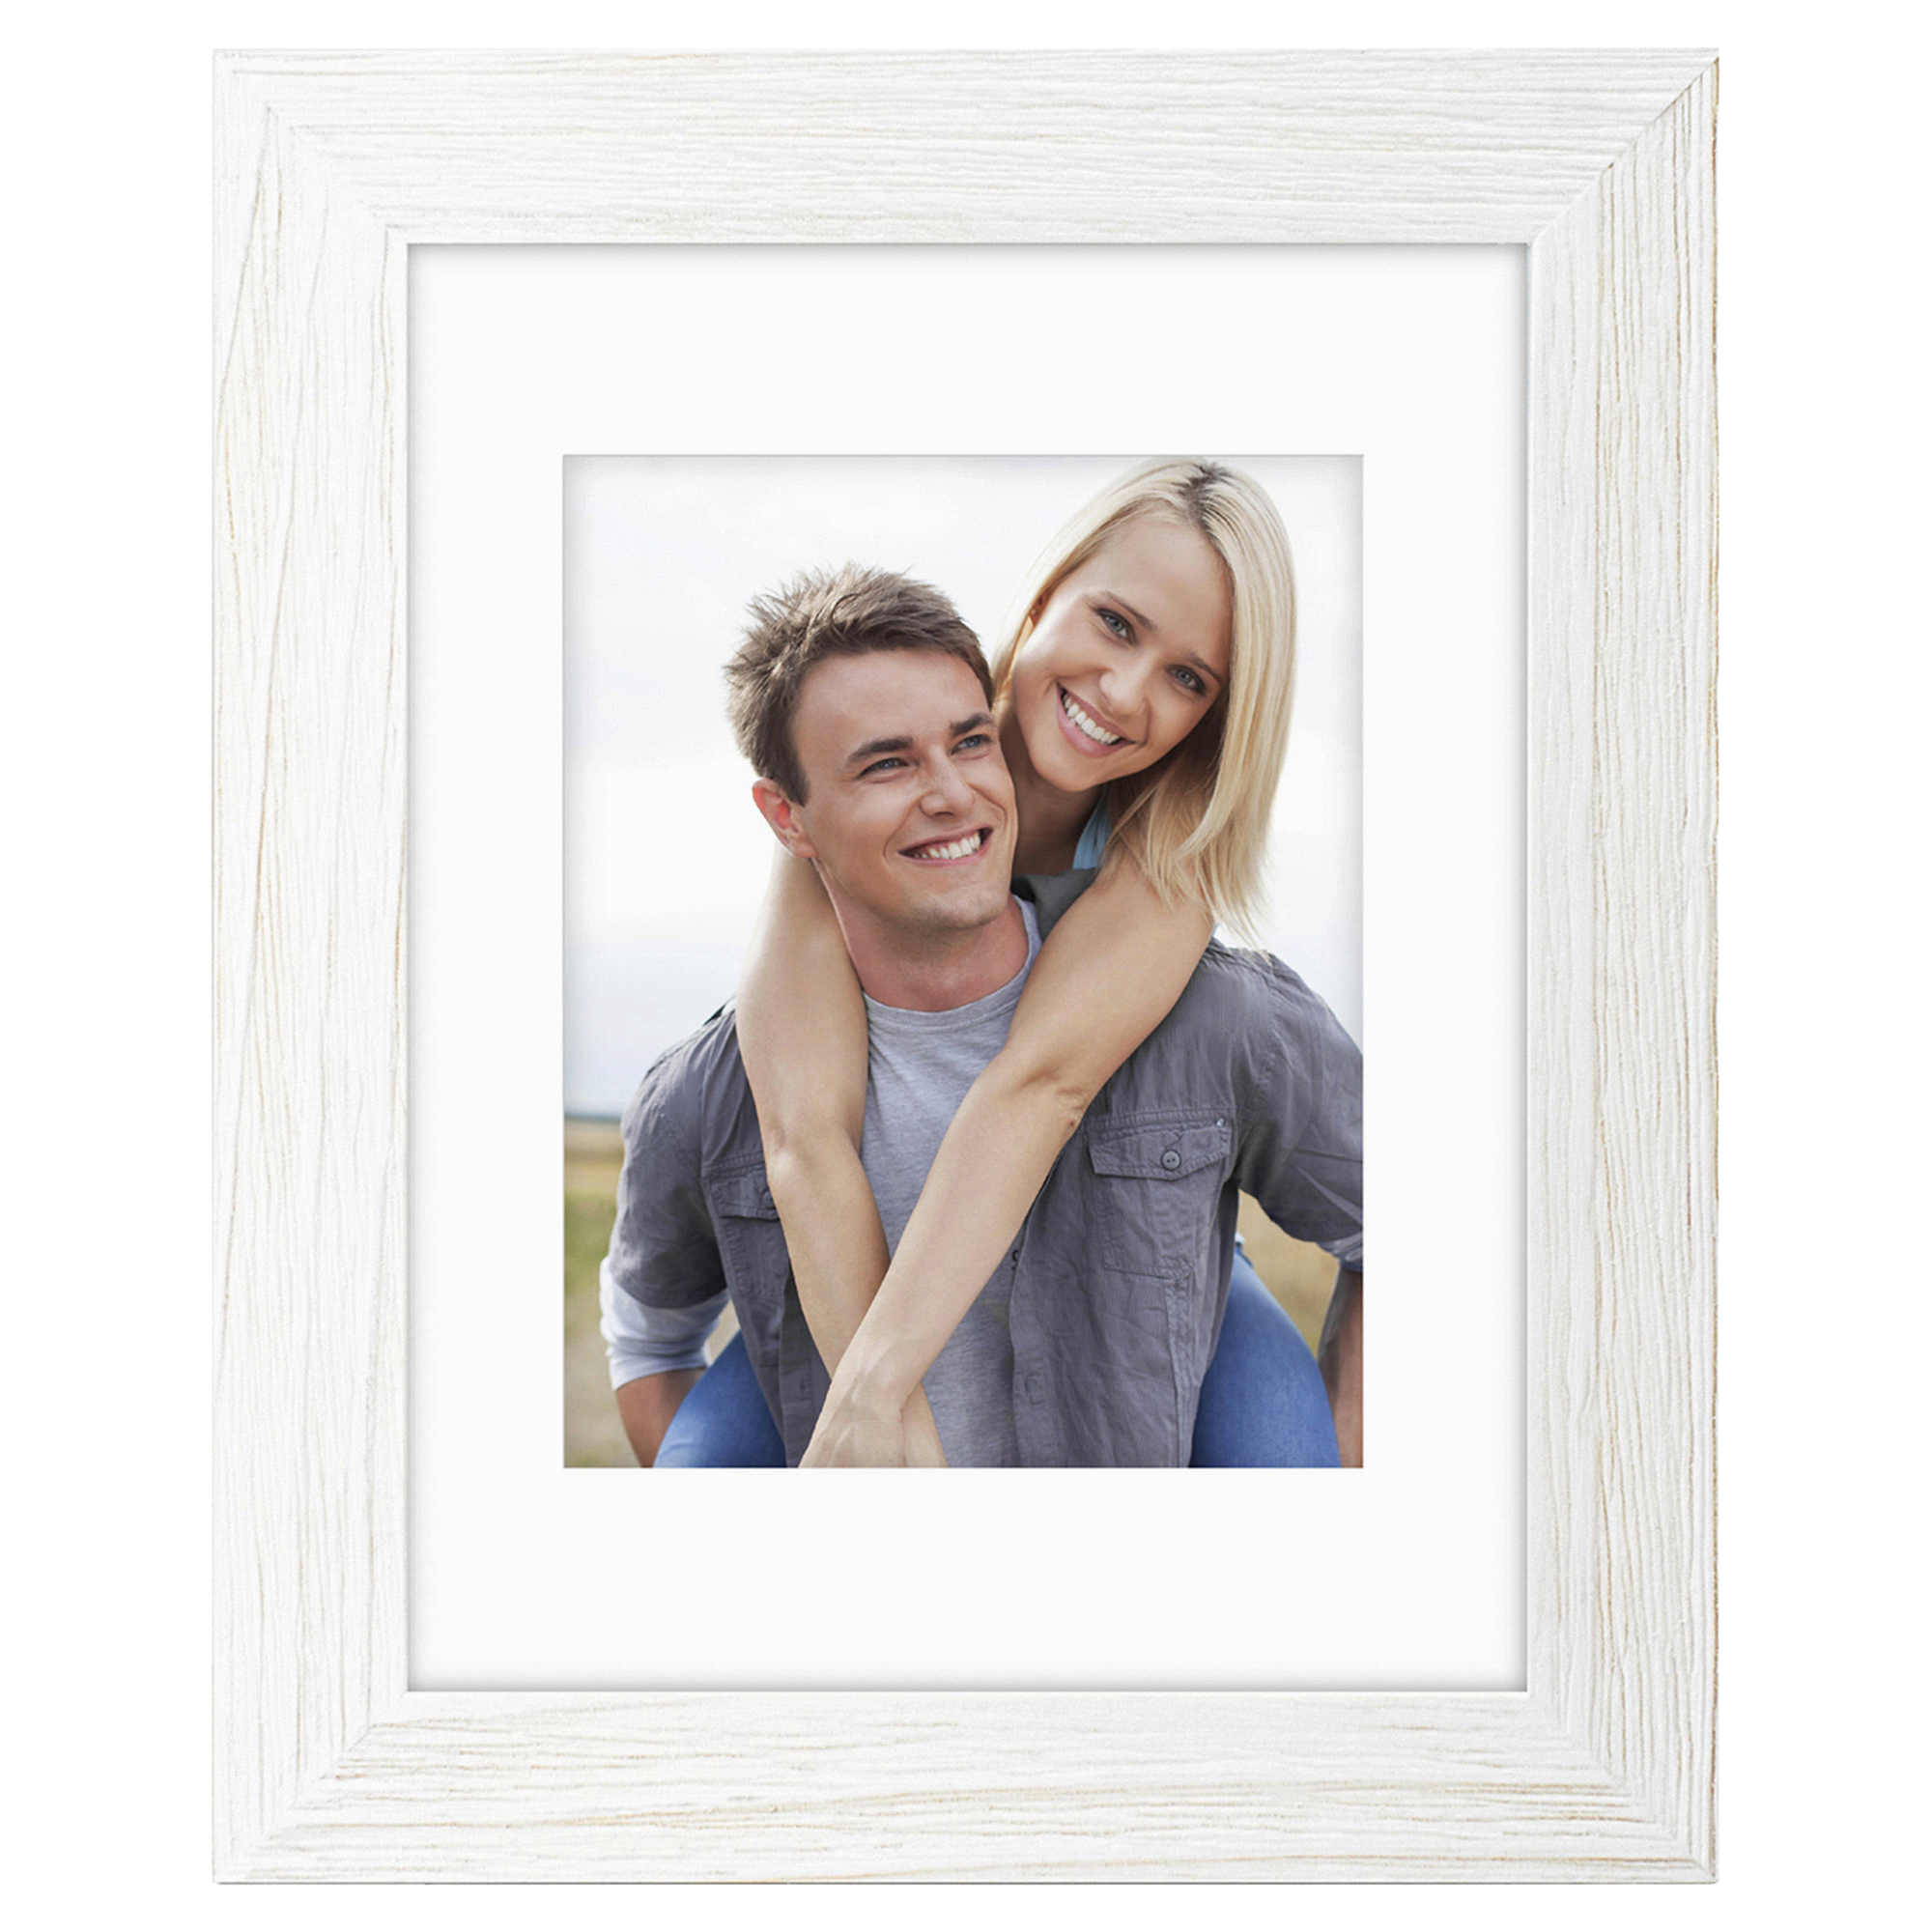 Meijer Picture Frames - Frame Design & Reviews ✓